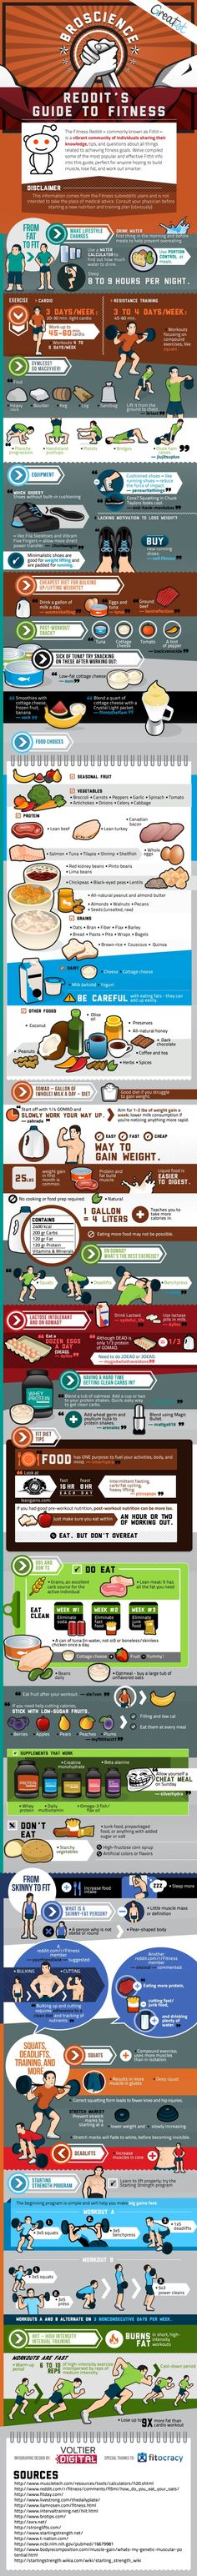 Bro Science: Reddit's Guide to Fitness  Infographic